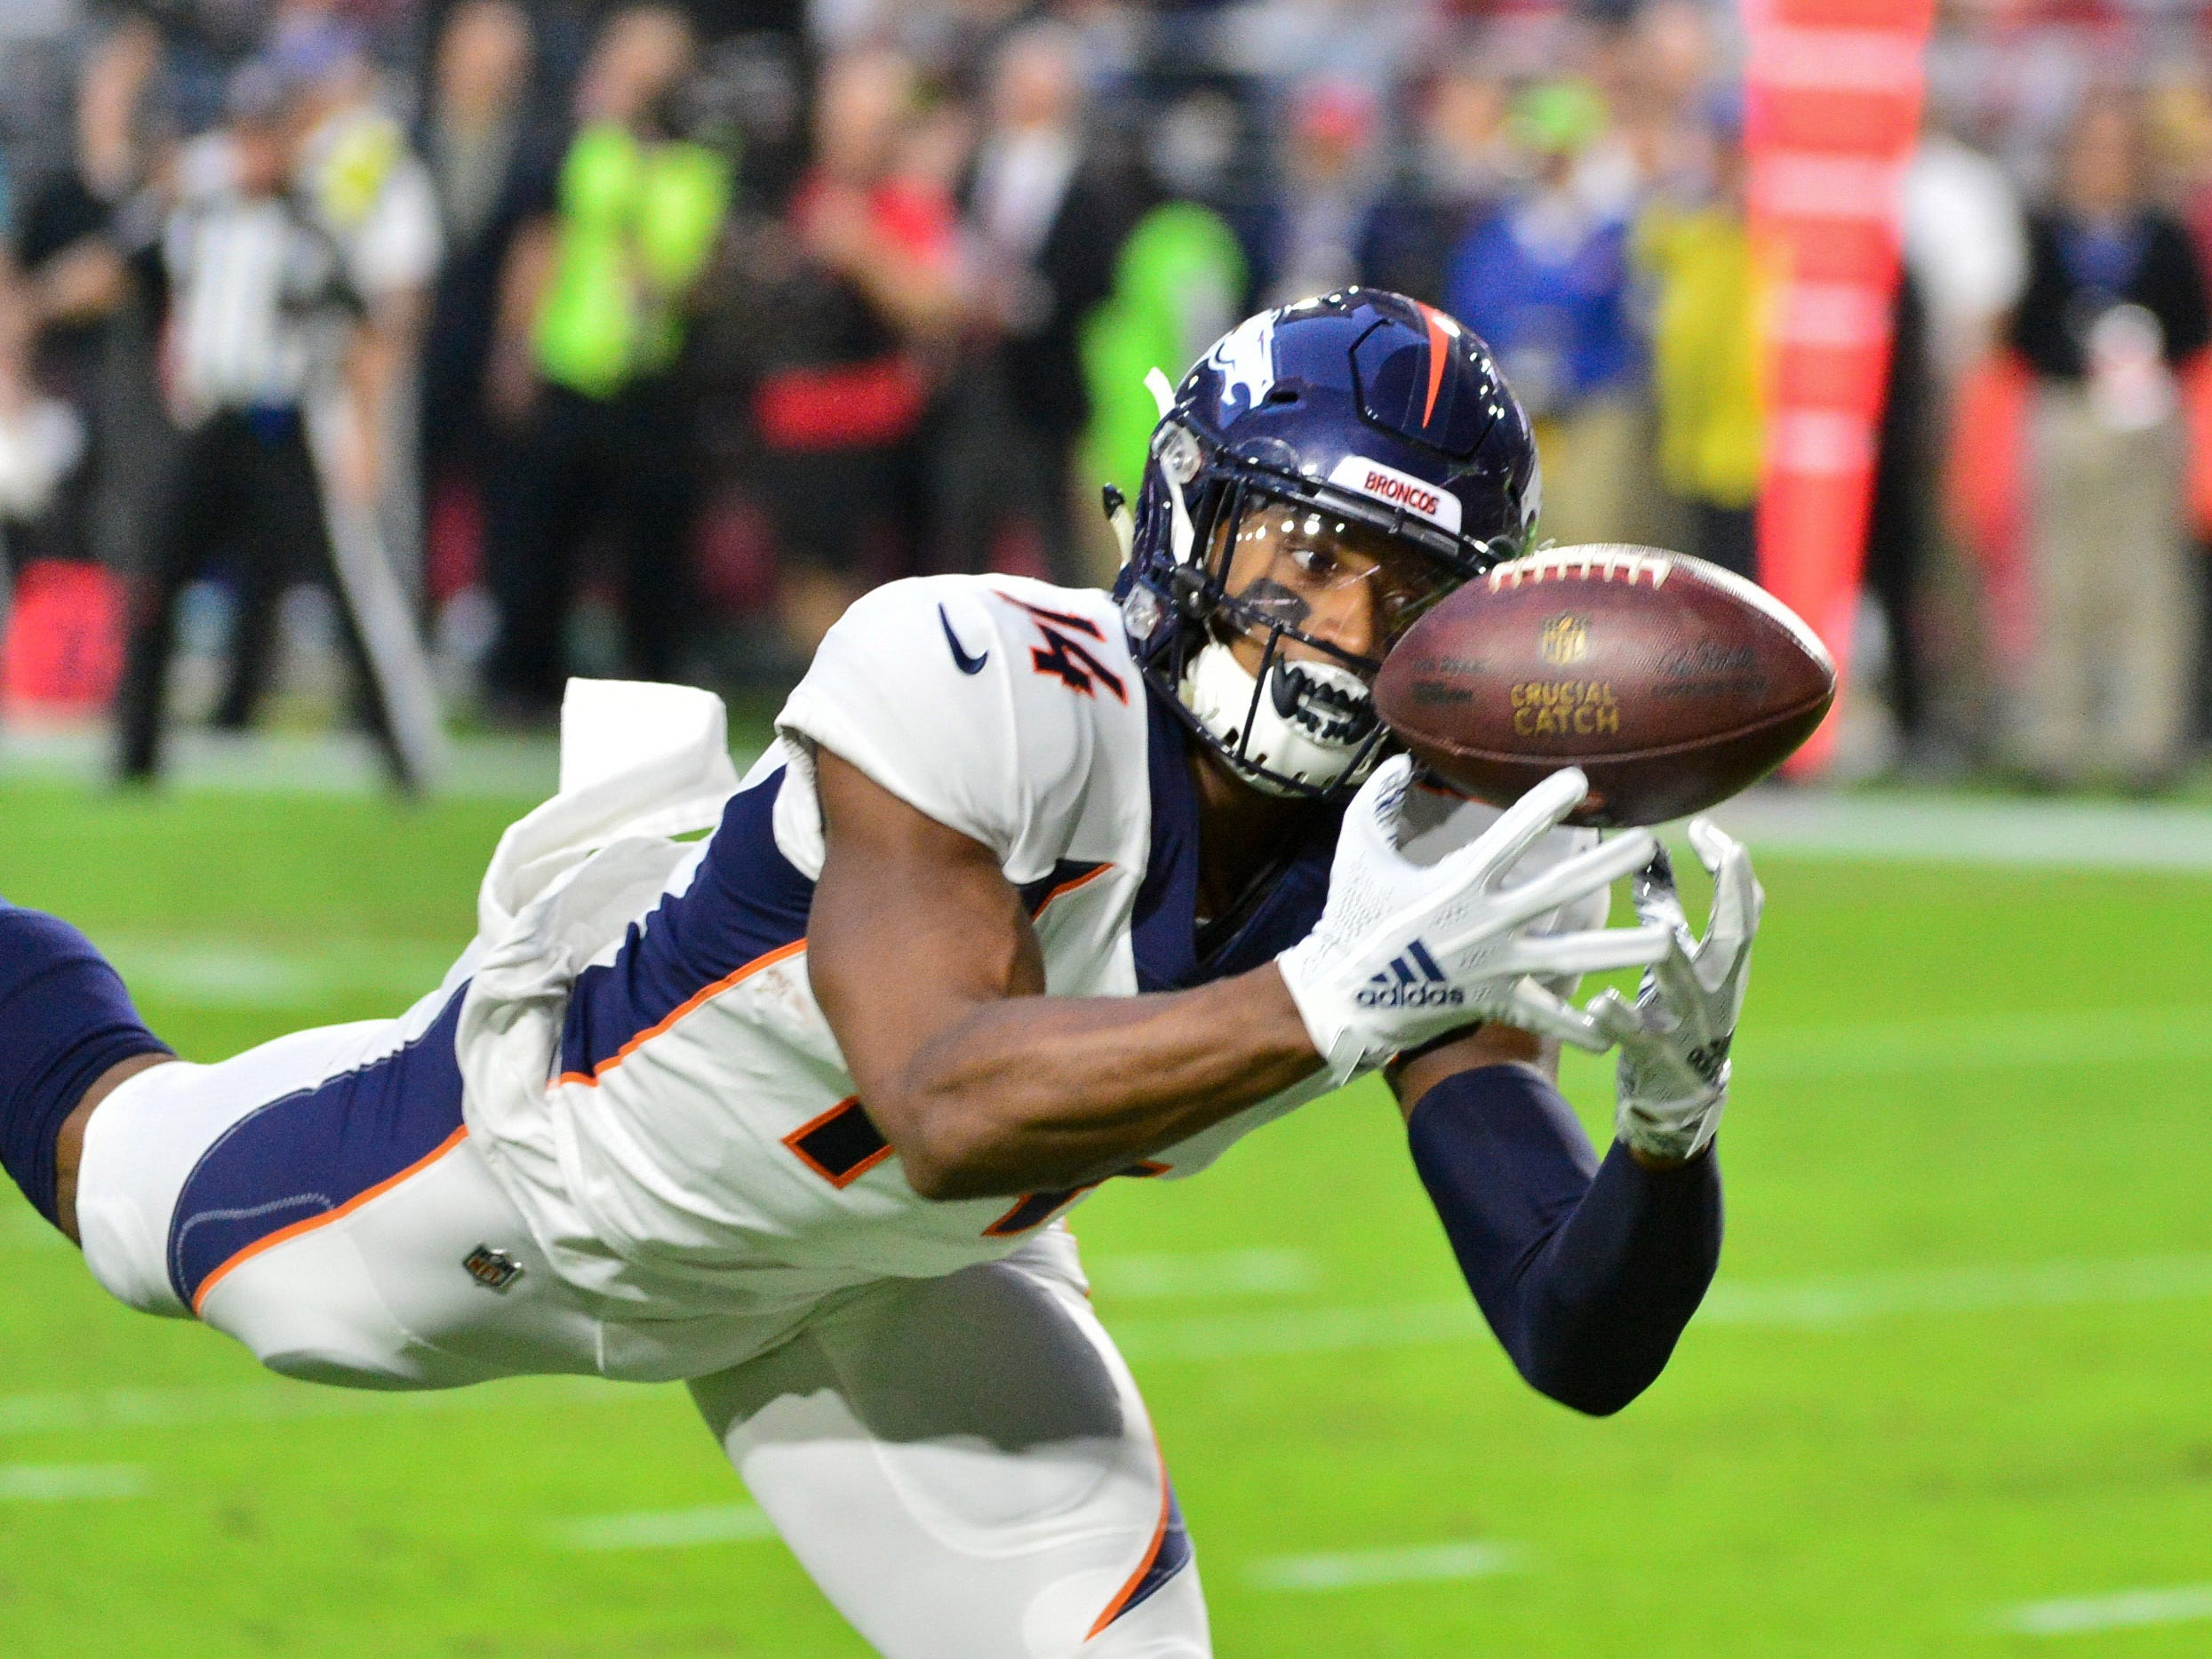 Oct 18, 2018; Glendale, AZ, USA; Denver Broncos wide receiver Courtland Sutton (14) makes a catch for a touchdown  during the first half against the Arizona Cardinals at State Farm Stadium.